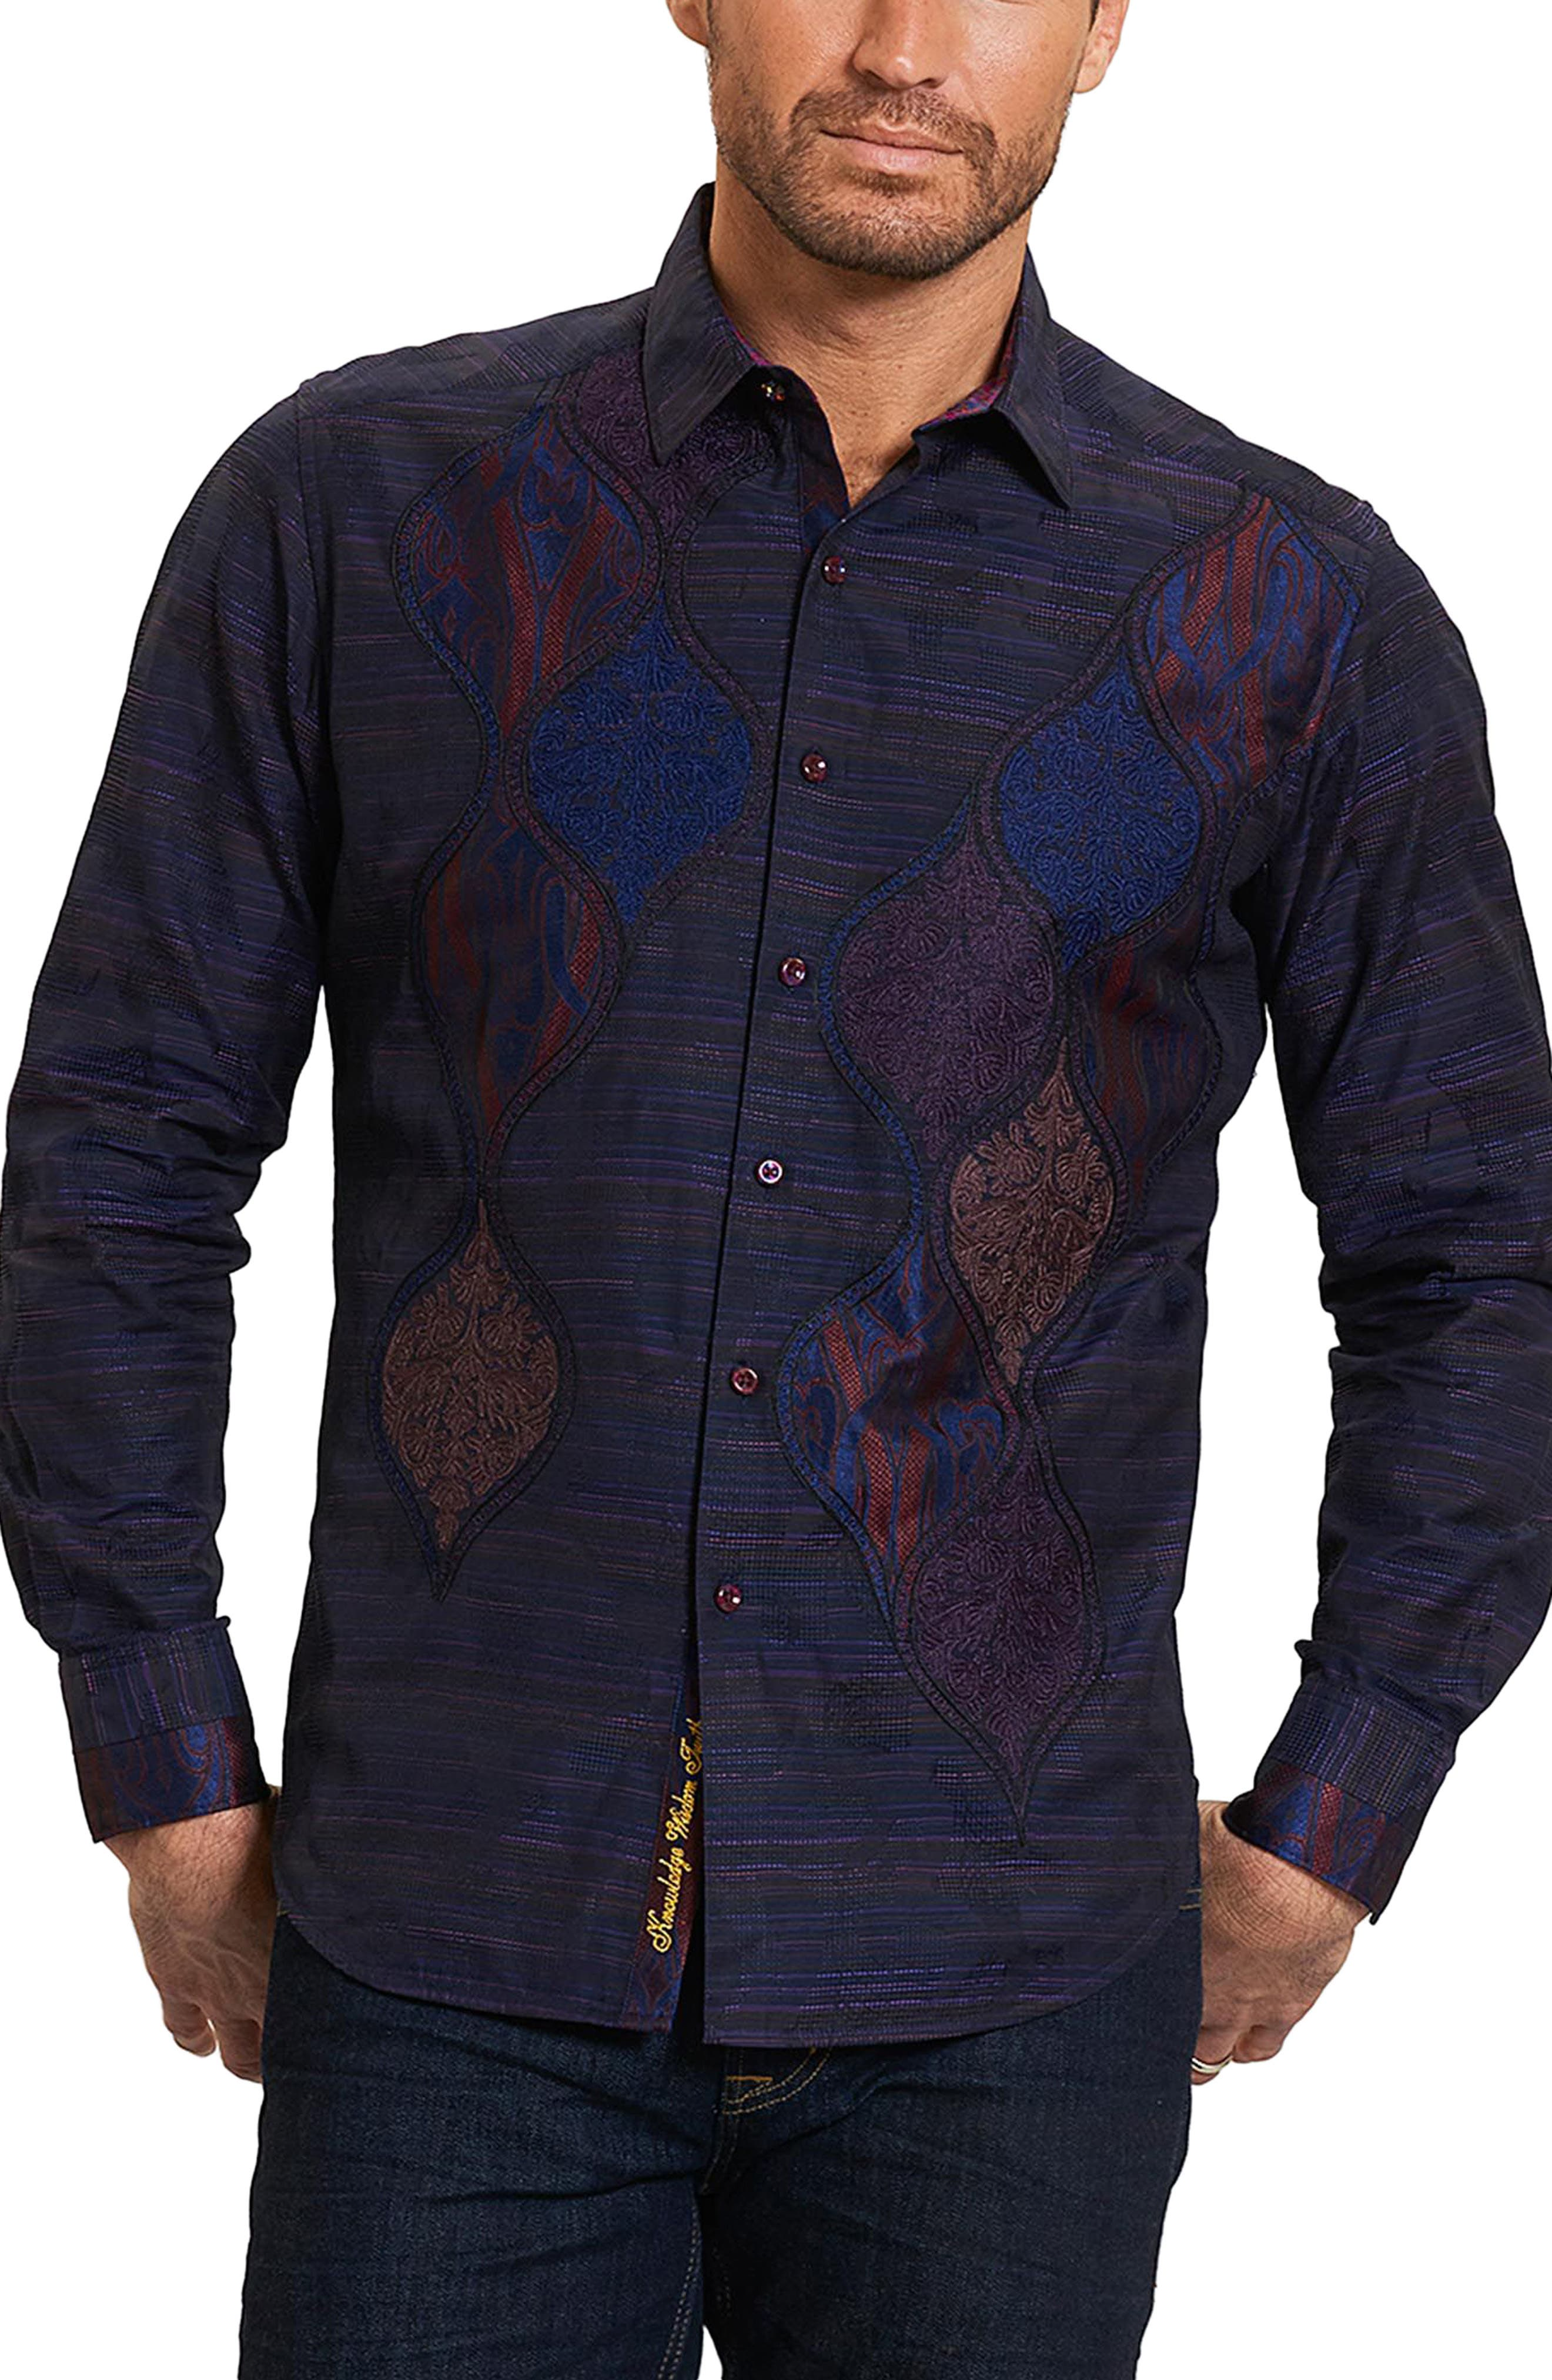 El Rey Classic Fit Embroidered Sport Shirt,                             Main thumbnail 1, color,                             510